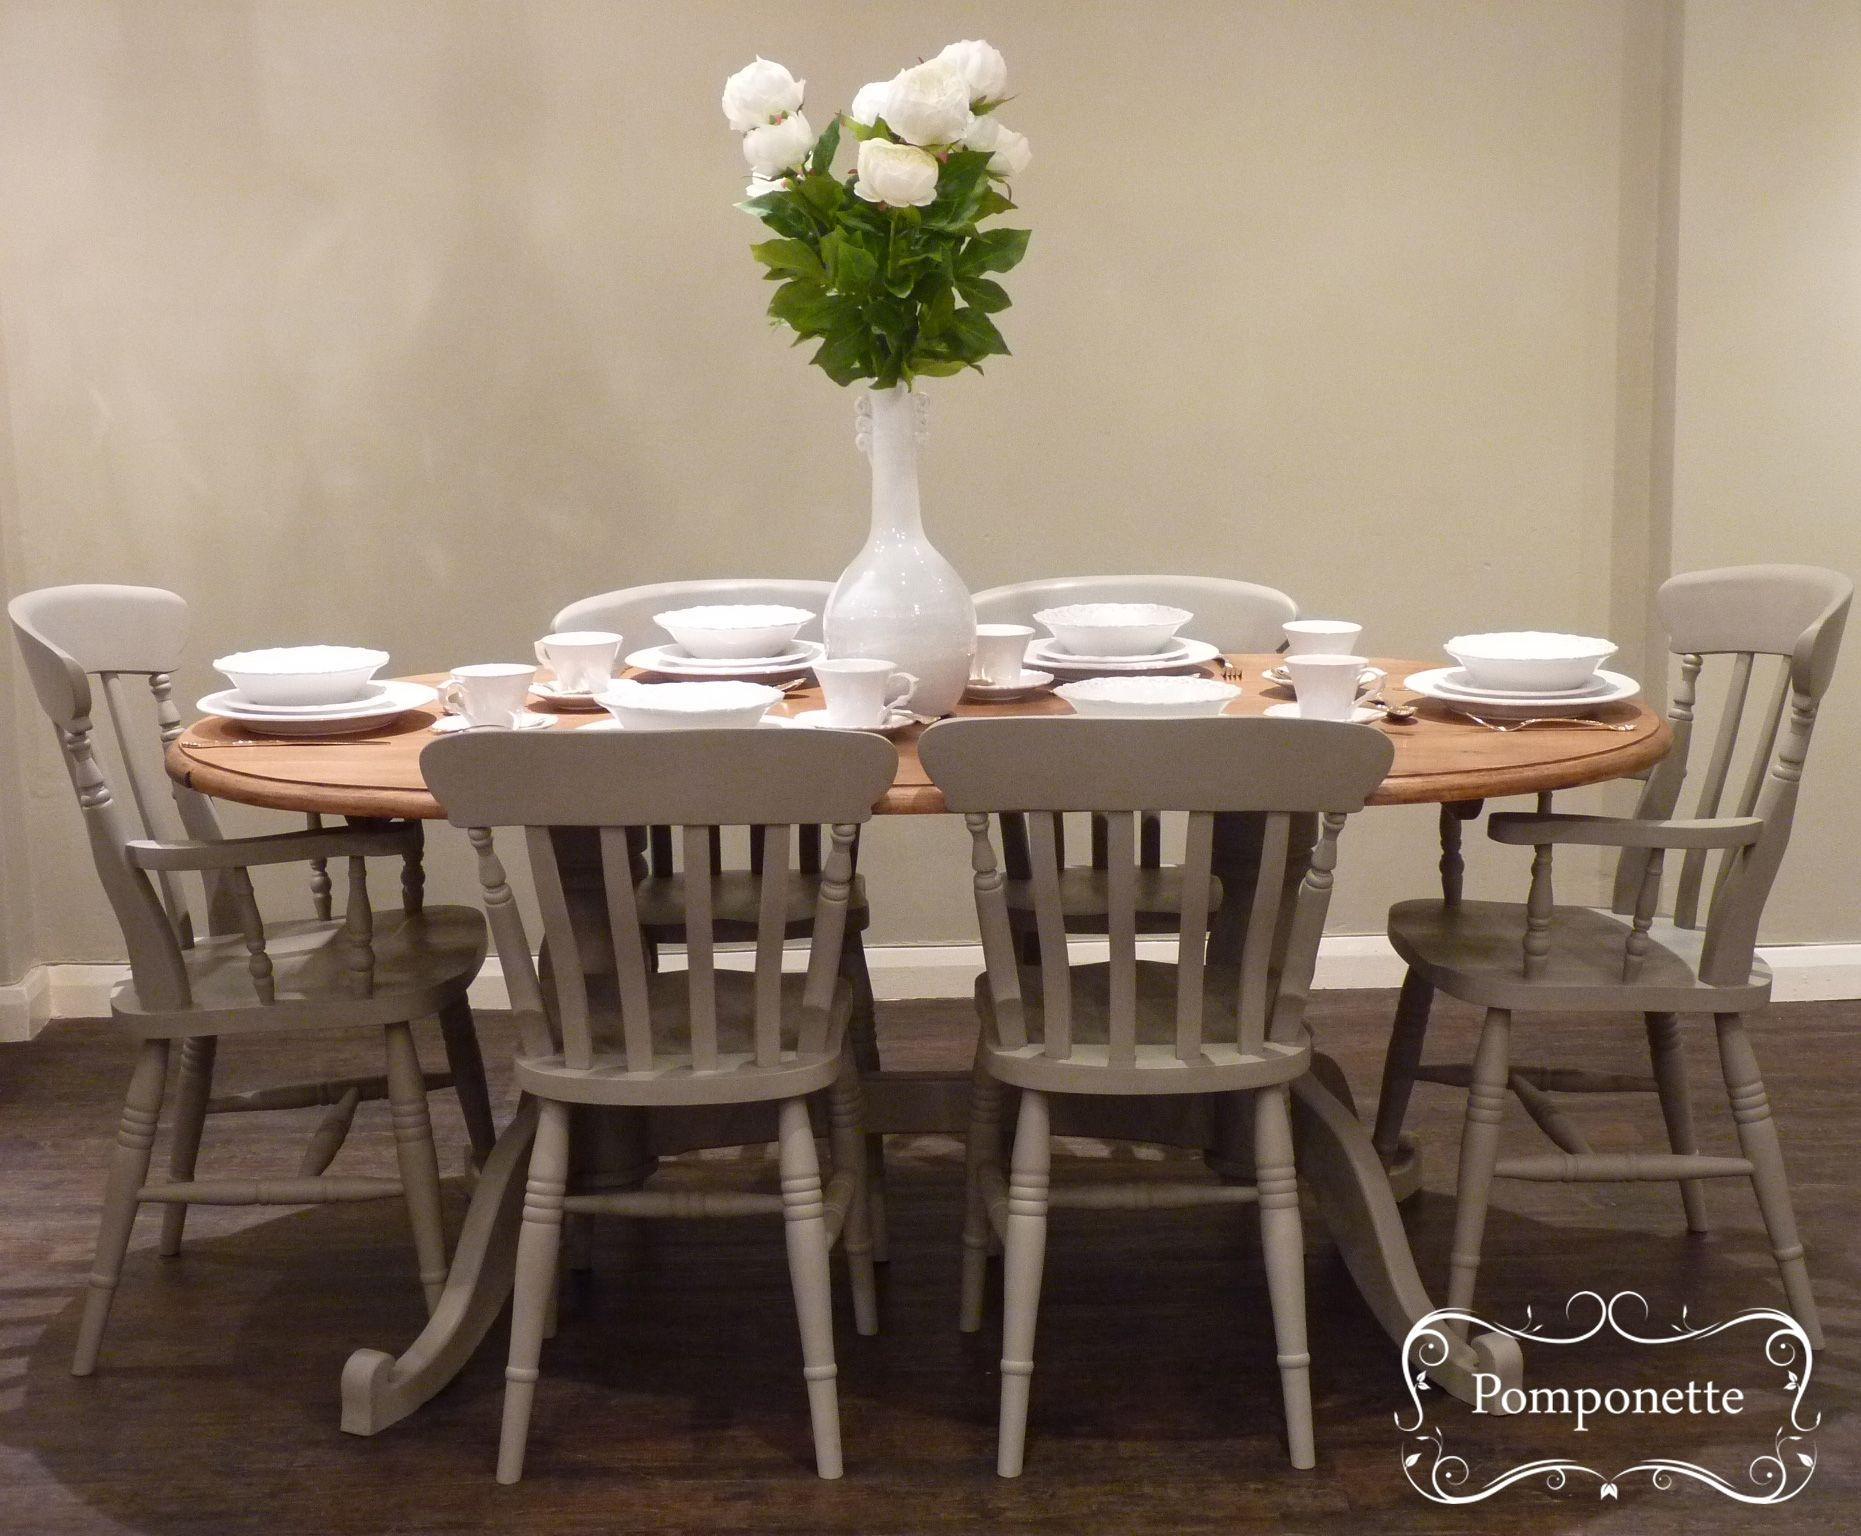 Pin by Gail Gaddis on Furniture | Pinterest | Oval dining tables ...